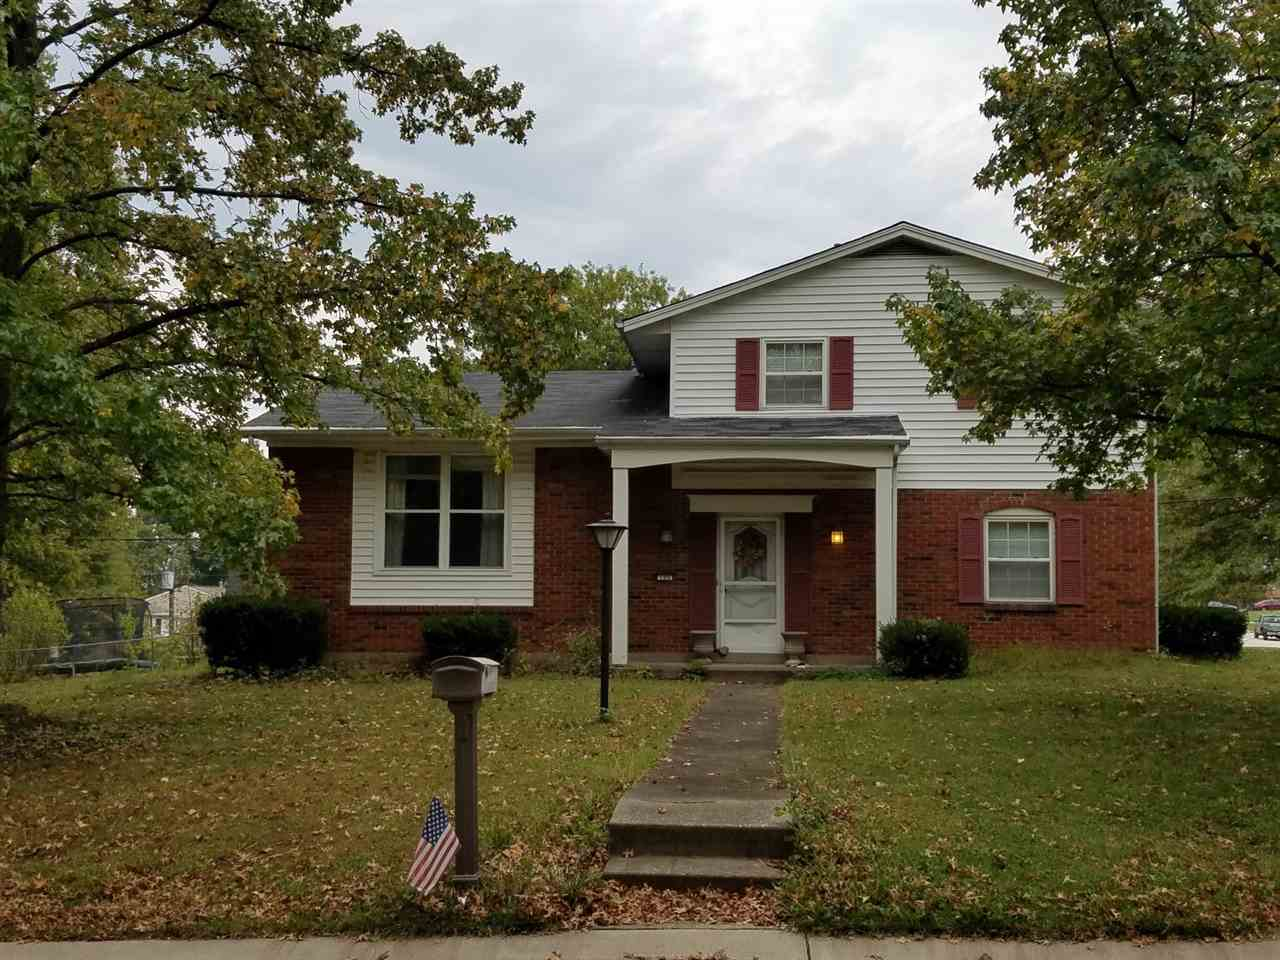 Photo 1 for 106 College Park Dr Crestview Hills, KY 41017